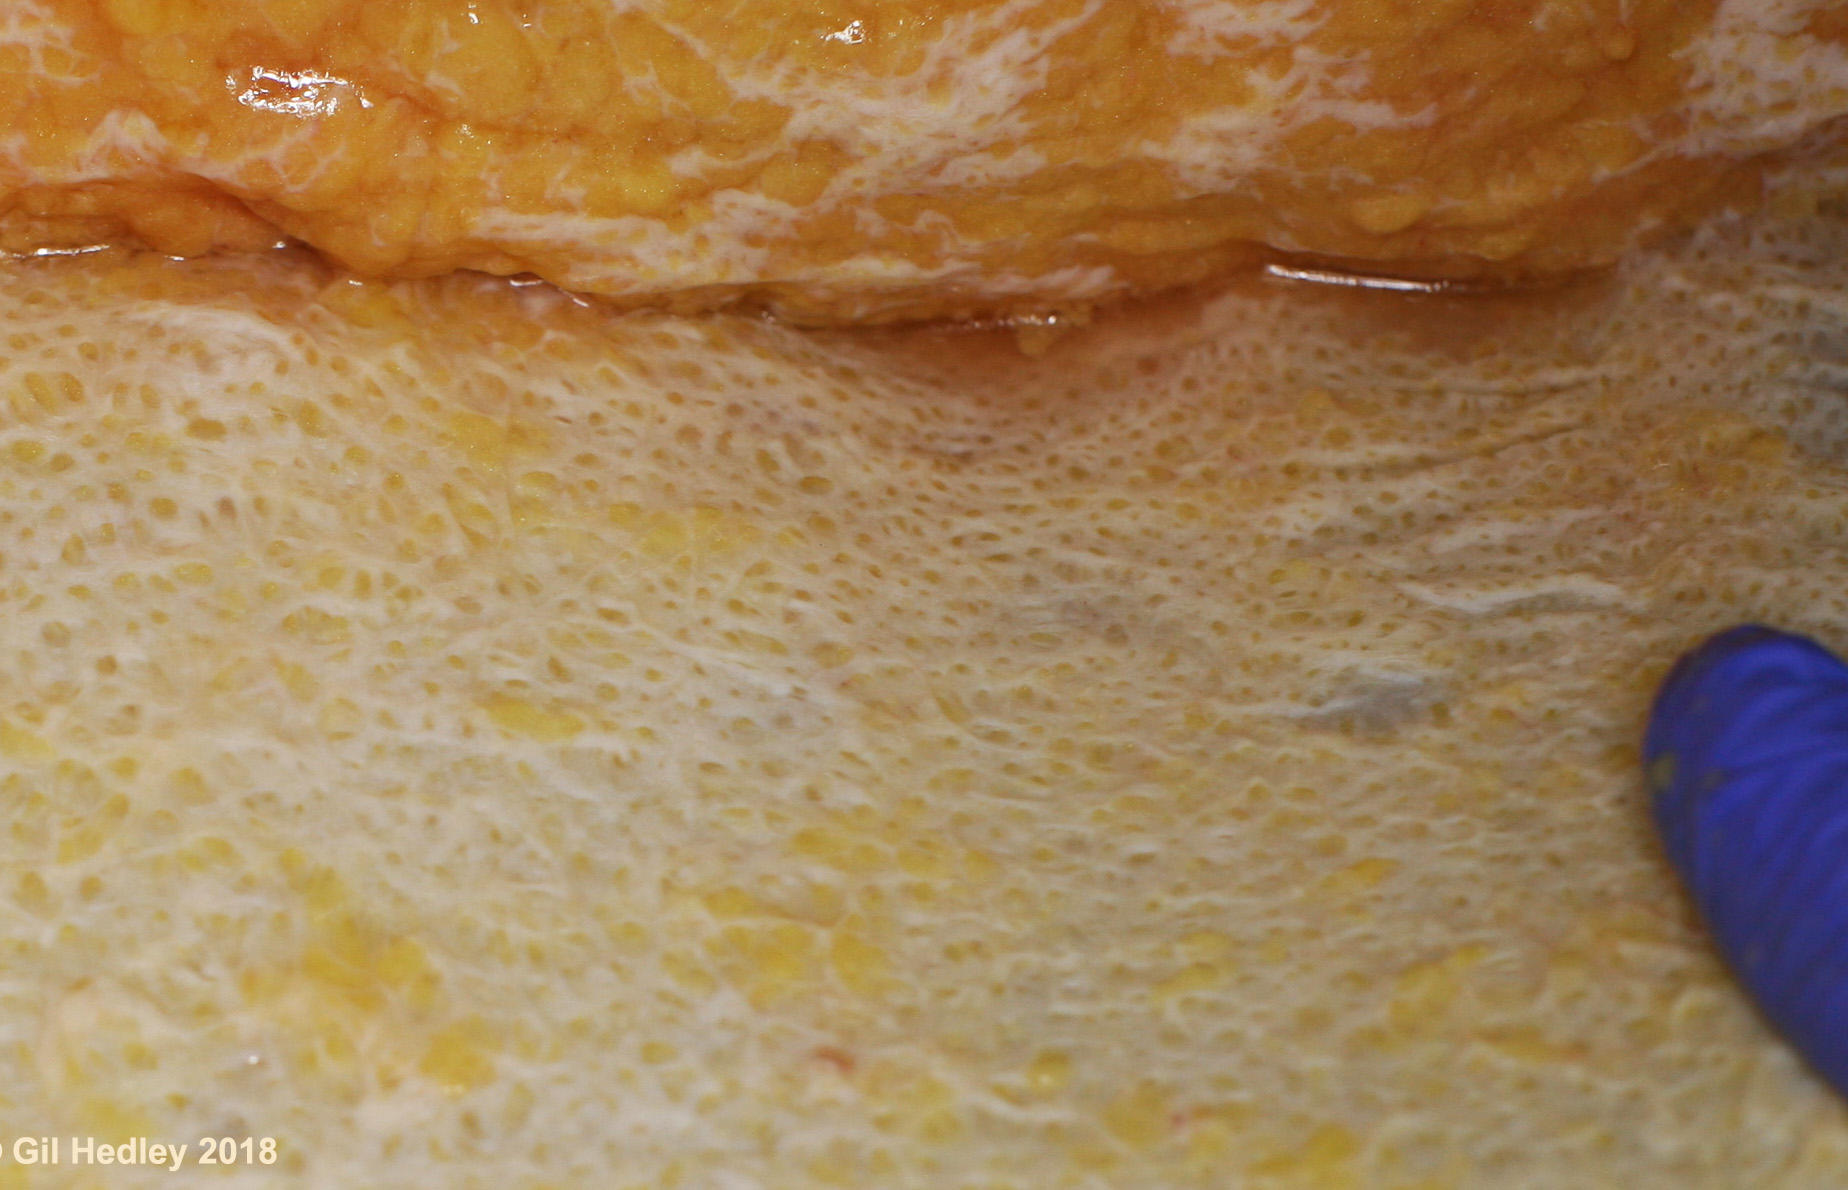 A close up image of the underside of a swath of human skin, showing the connective tissue patterning in the dermis looking similar to the surface of a canteloupe.